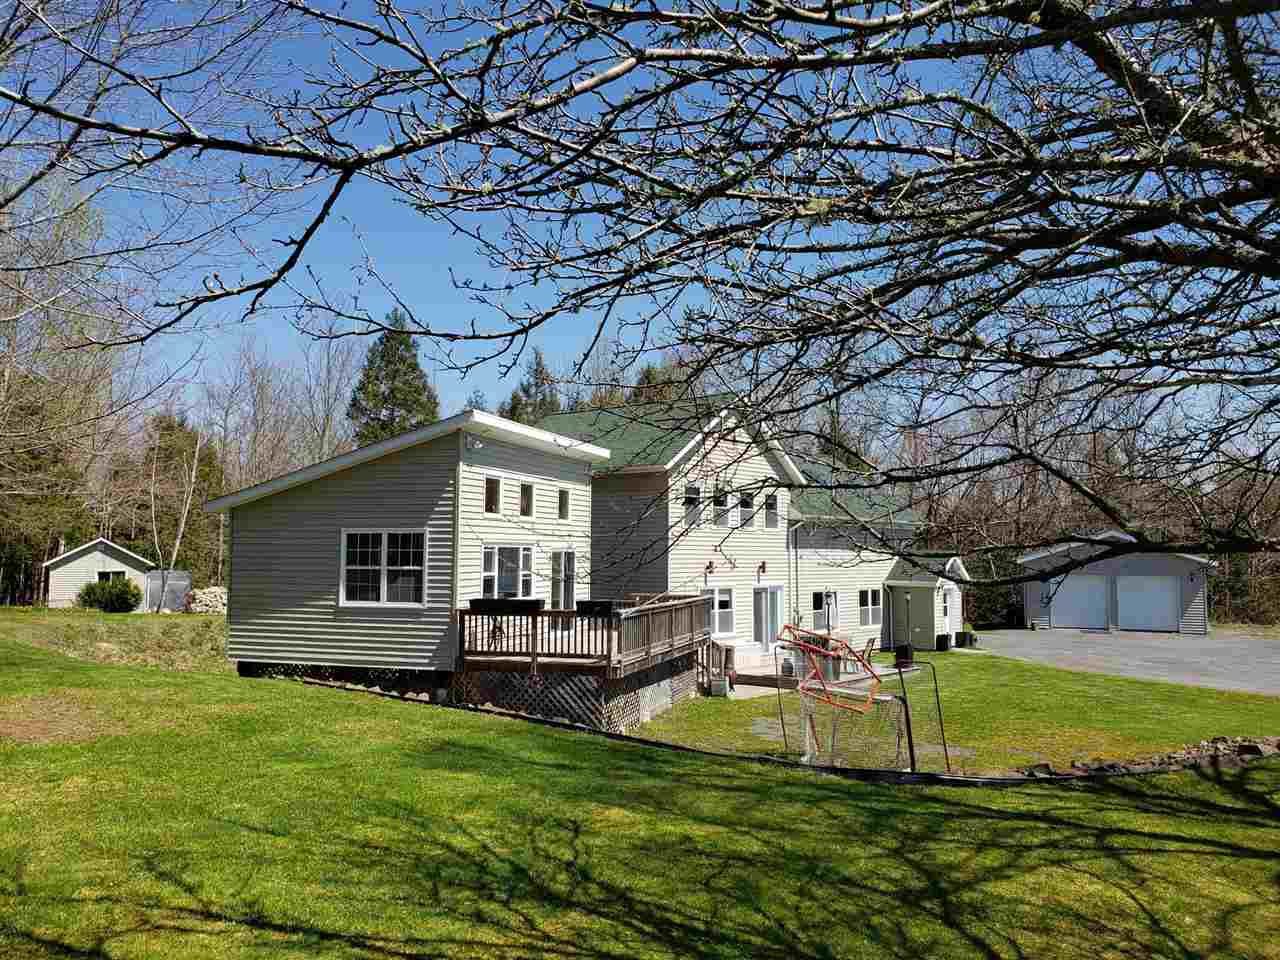 Main Photo: 193 Lawrence Road in Windermere: 404-Kings County Residential for sale (Annapolis Valley)  : MLS®# 202007978